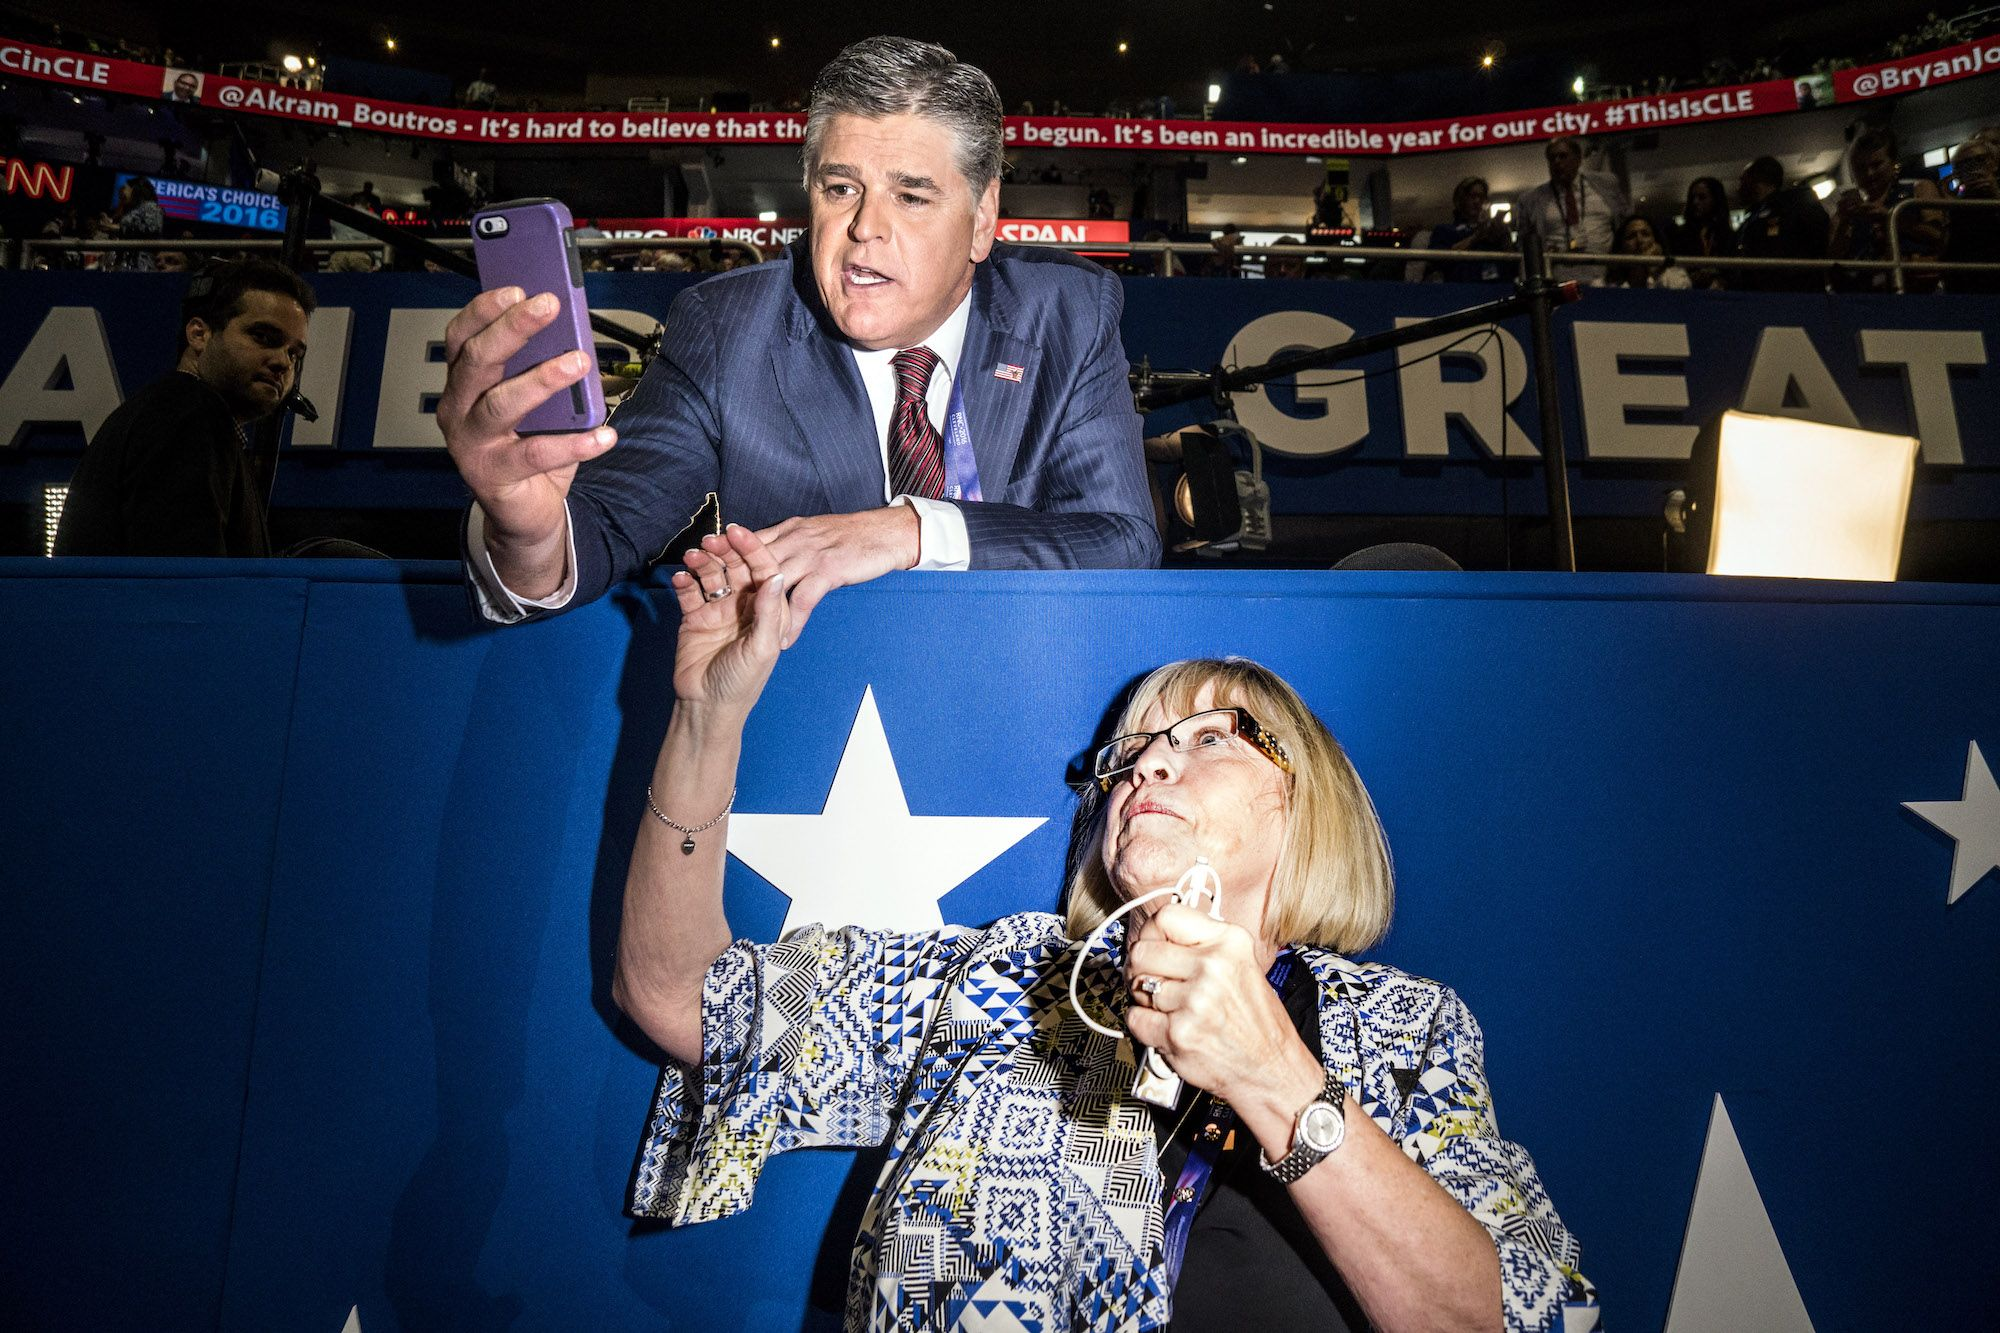 Fox News personality Sean Hannity at the Republican National Convention in Cleveland, OH, July 18, 2016.